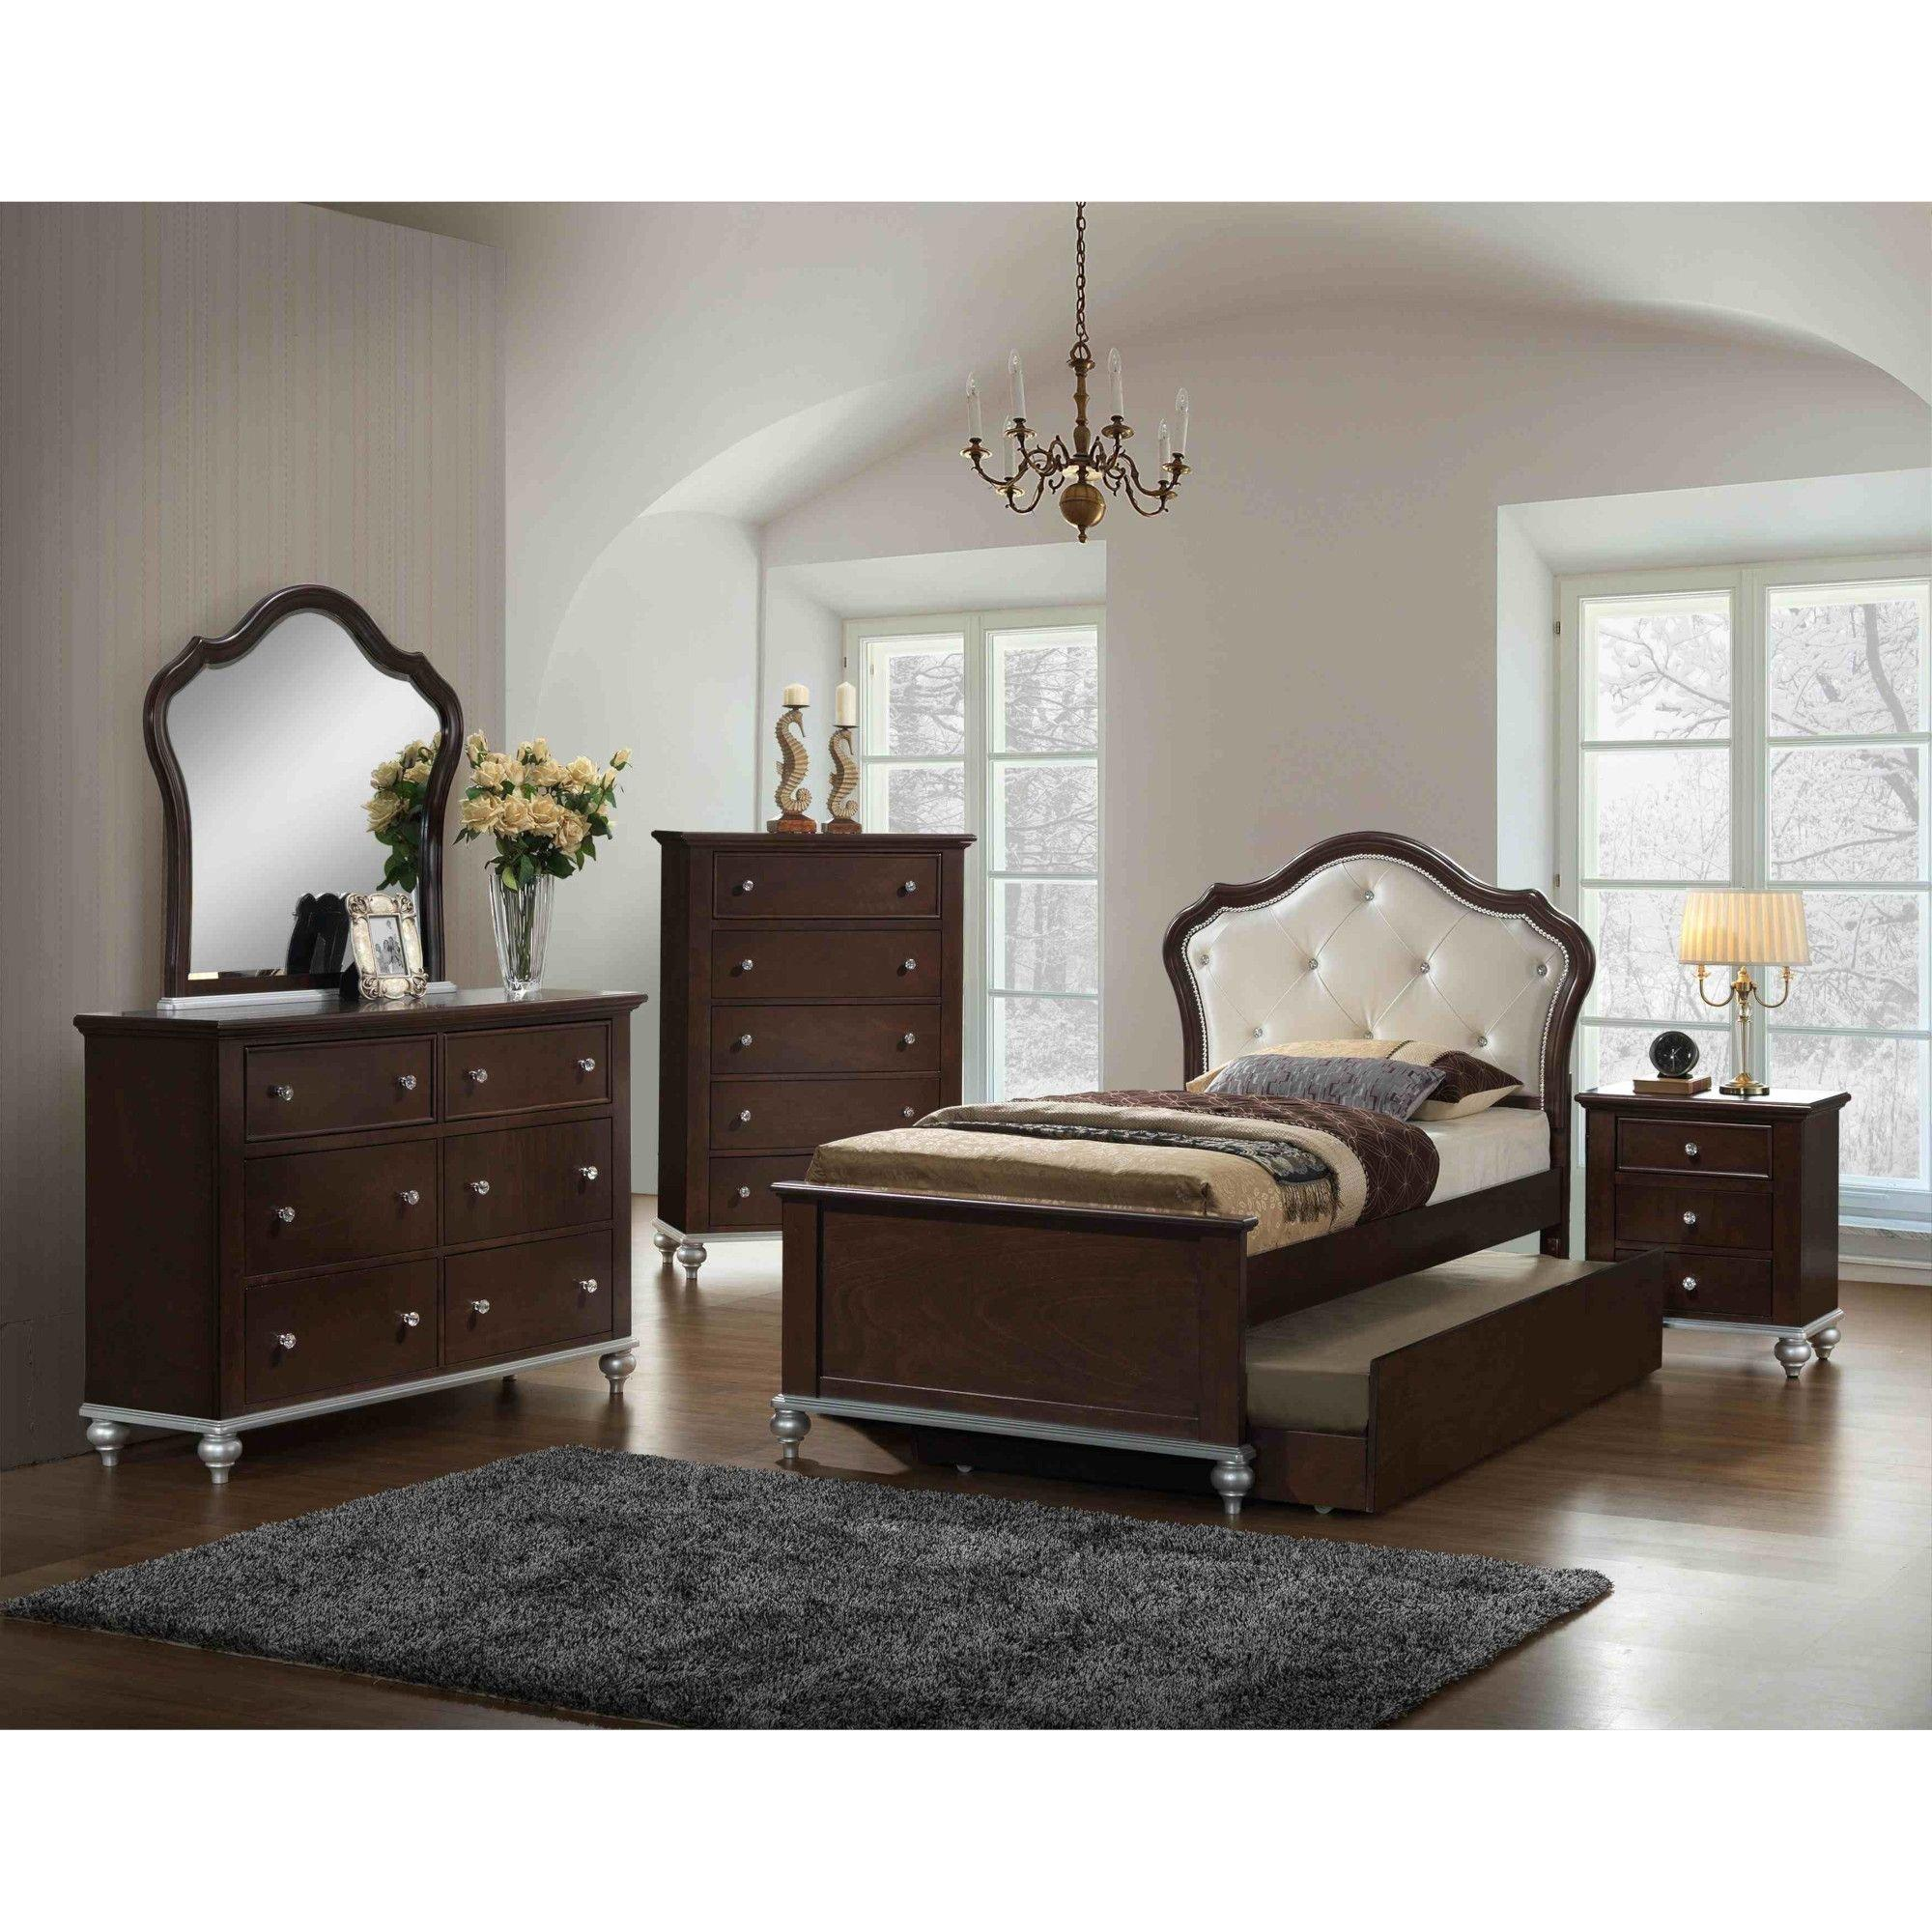 Rent To Own Elements International 5 Piece Allison Twin Panel Bedroom Set At Aaron S Today